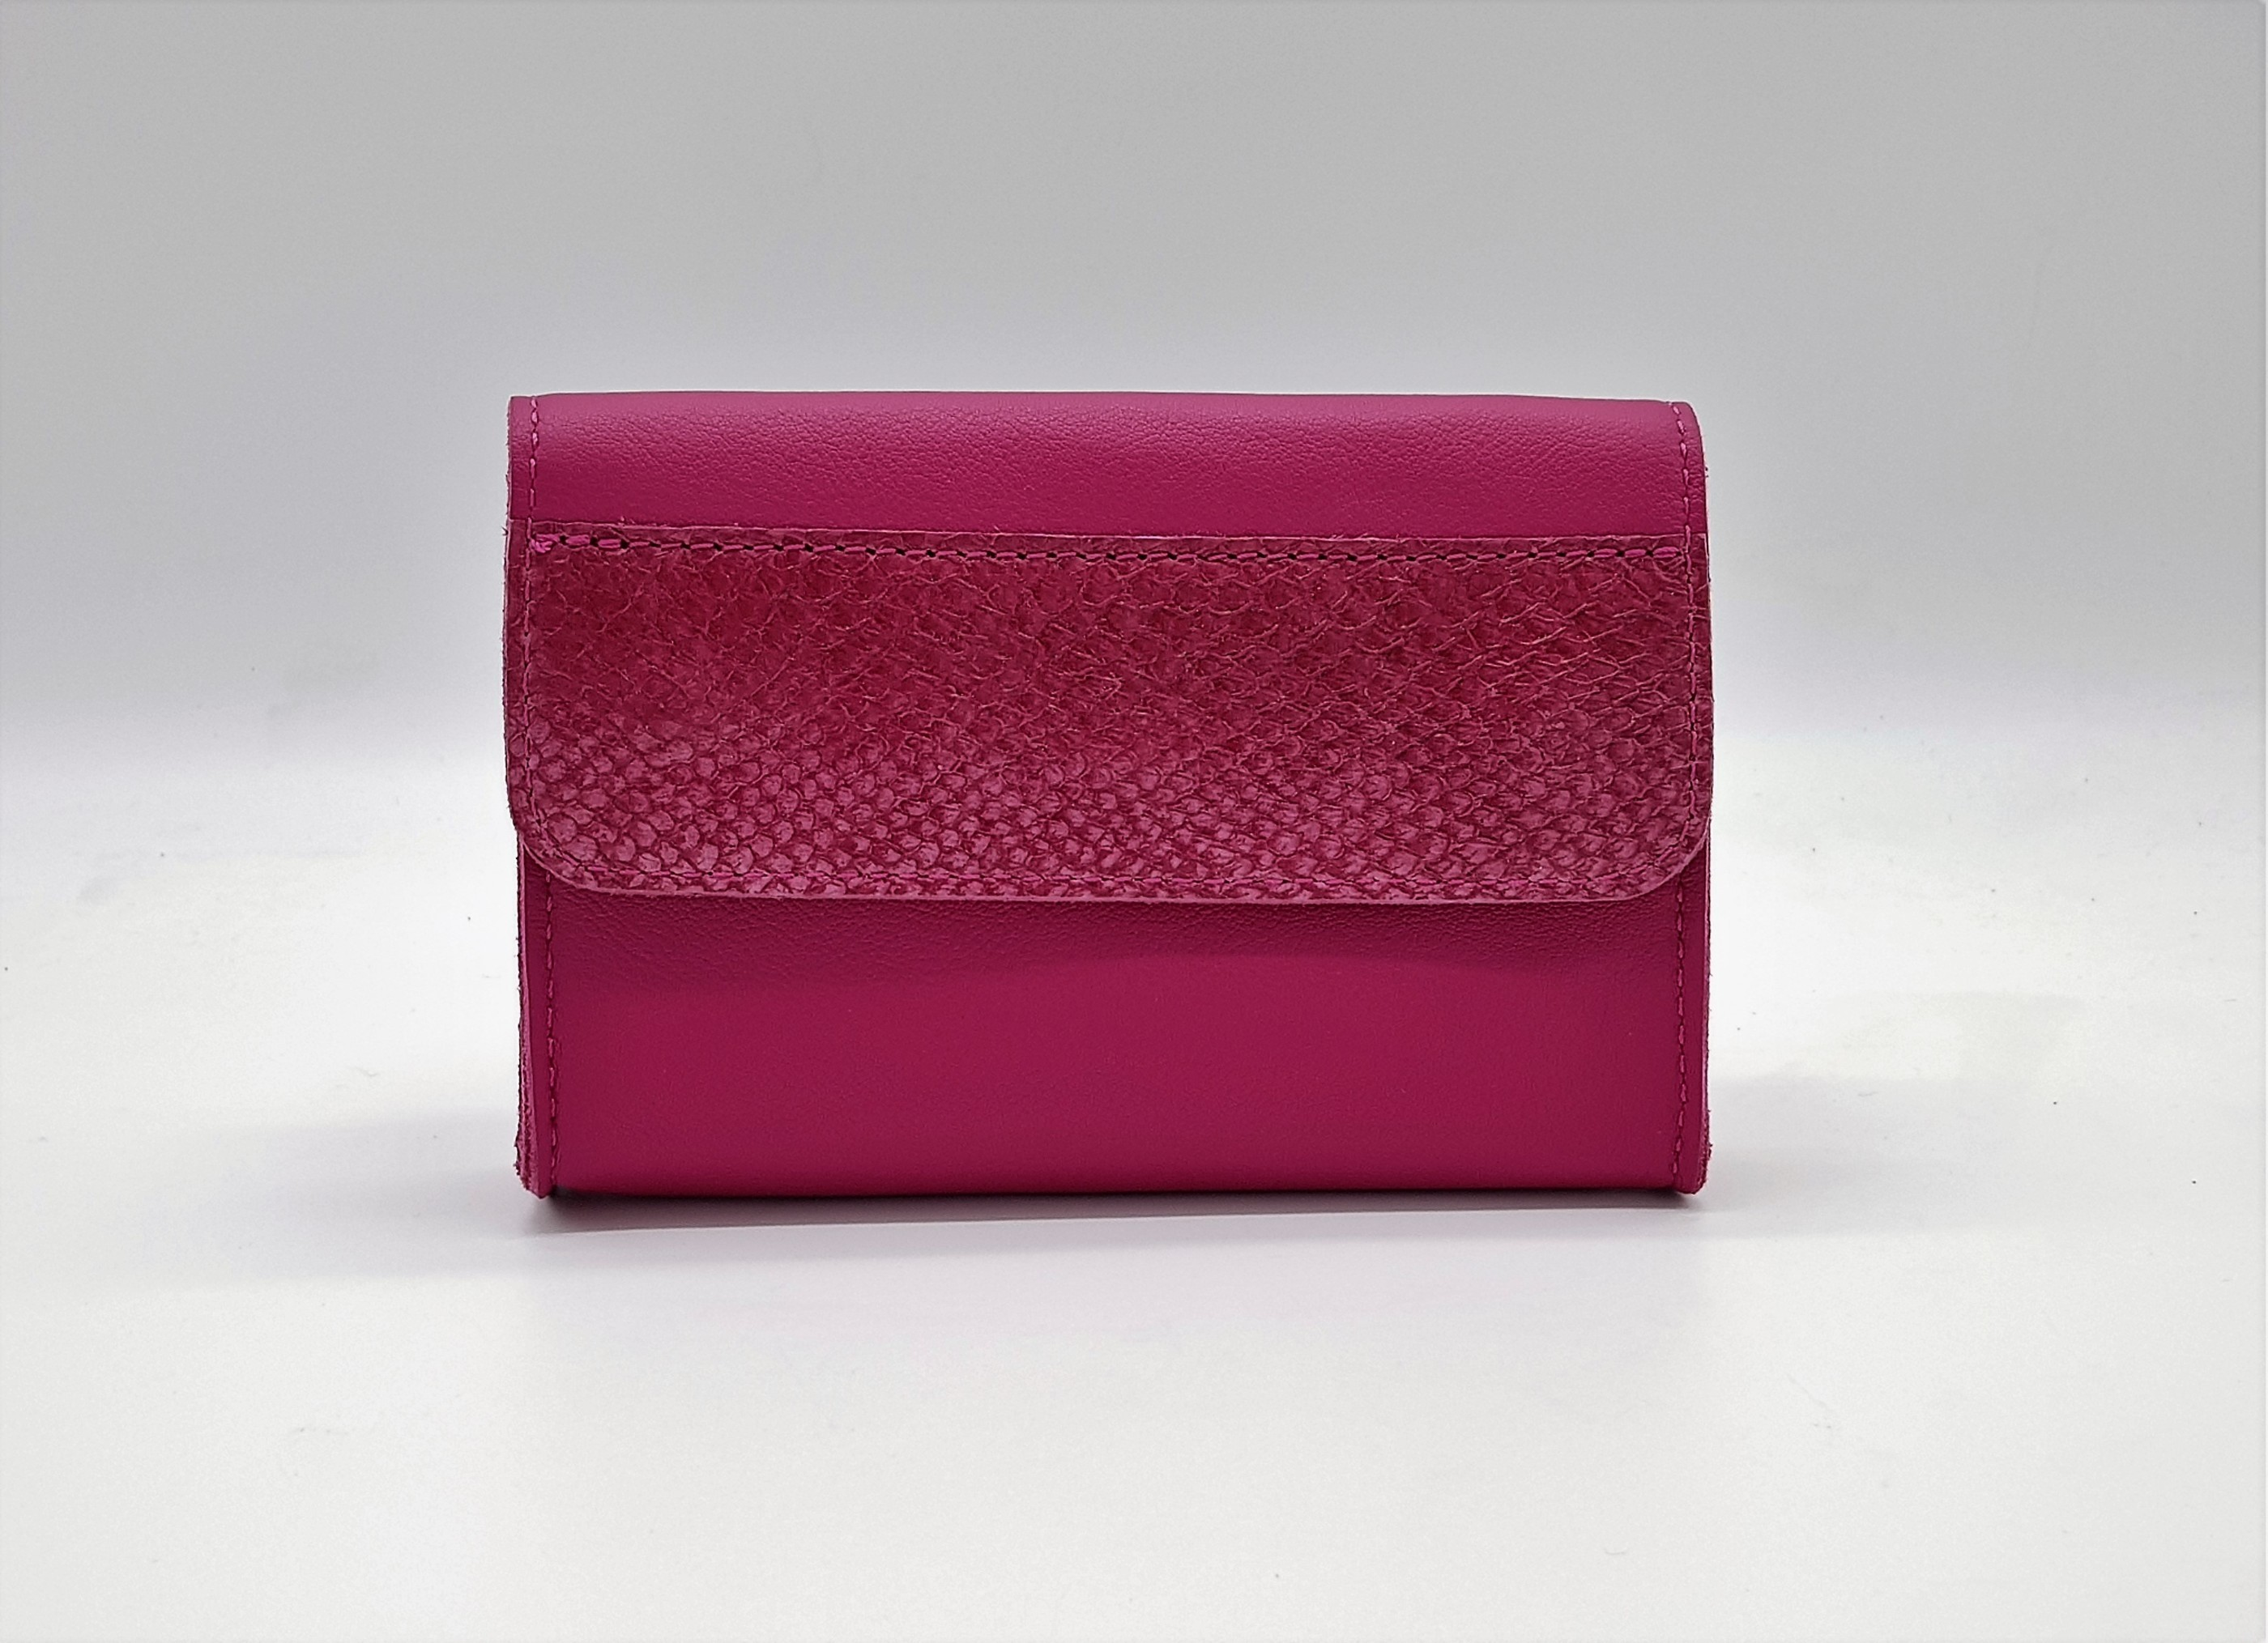 Beltissimo Raspberry Clutch